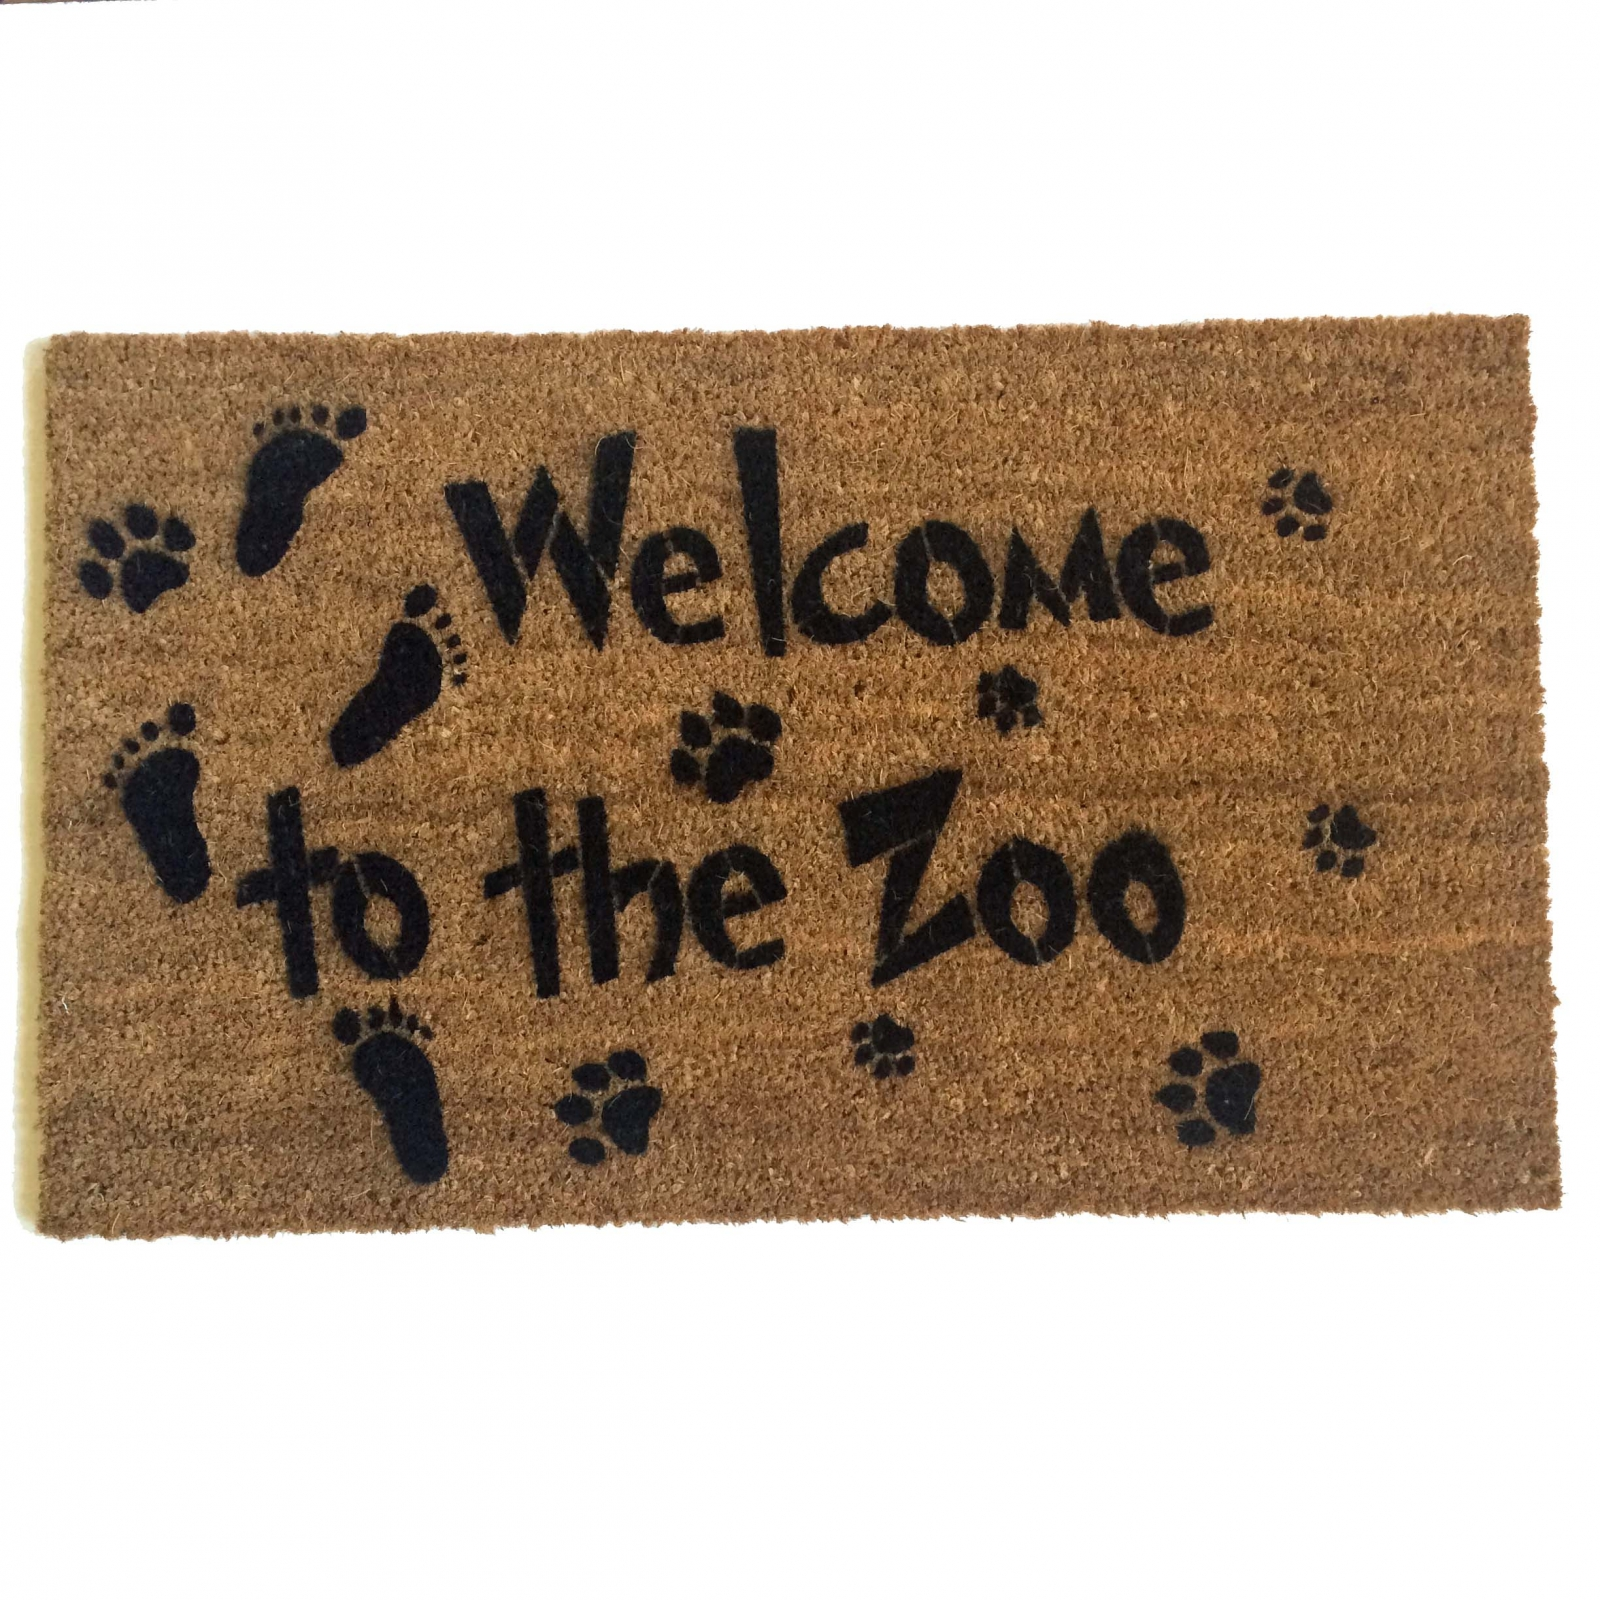 welcome cat art mat mats door leave jb jimbobart a style astyle living